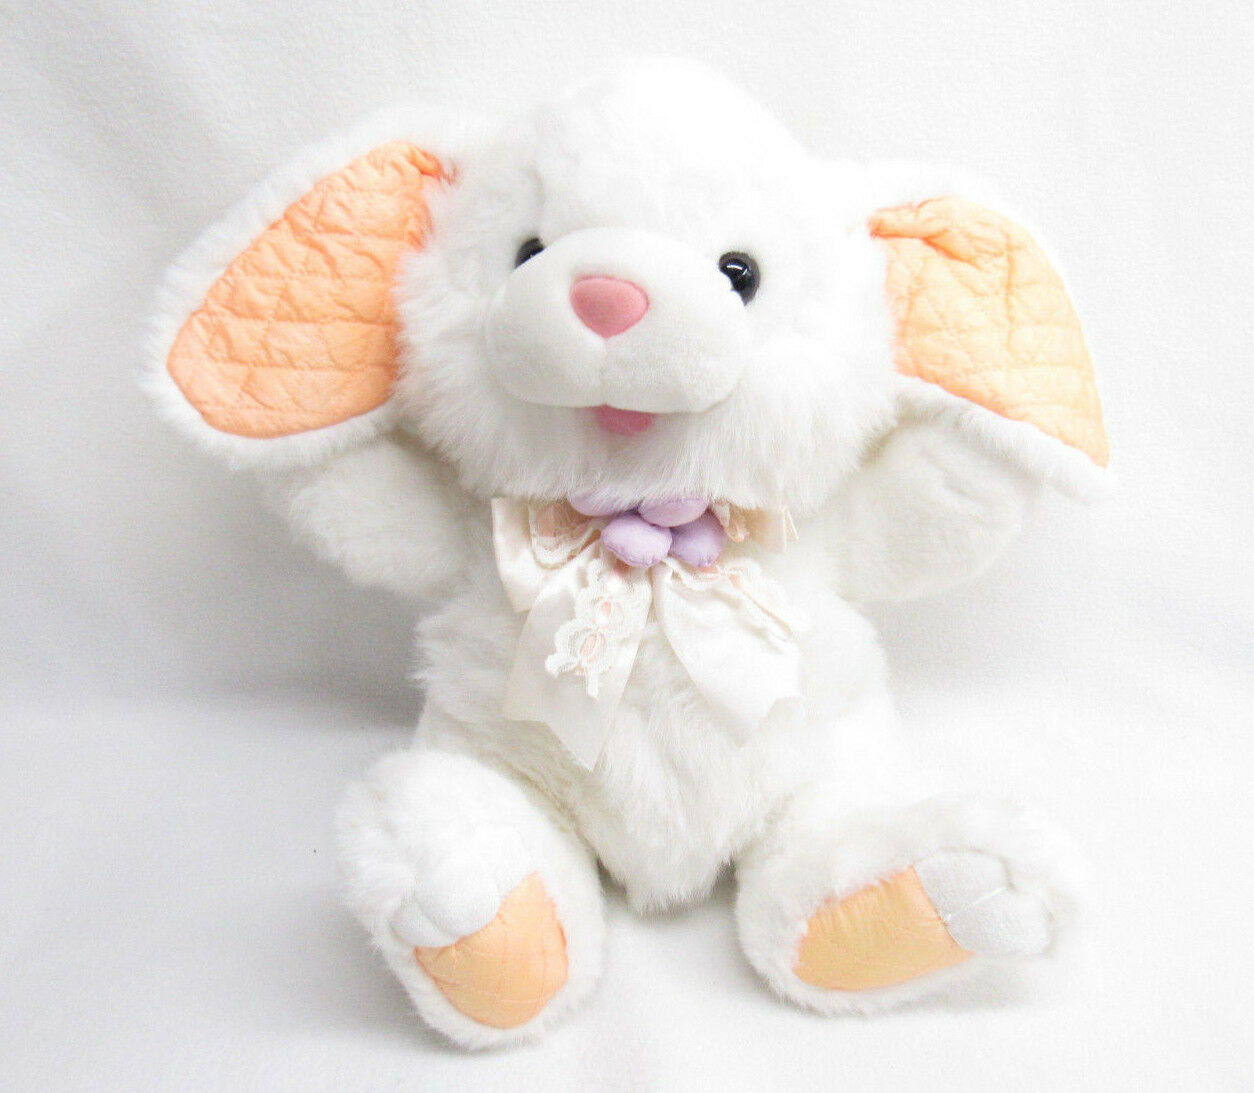 VTG FAIRVIEW BUNNY RABBIT PLUSH QUILTED NYLON